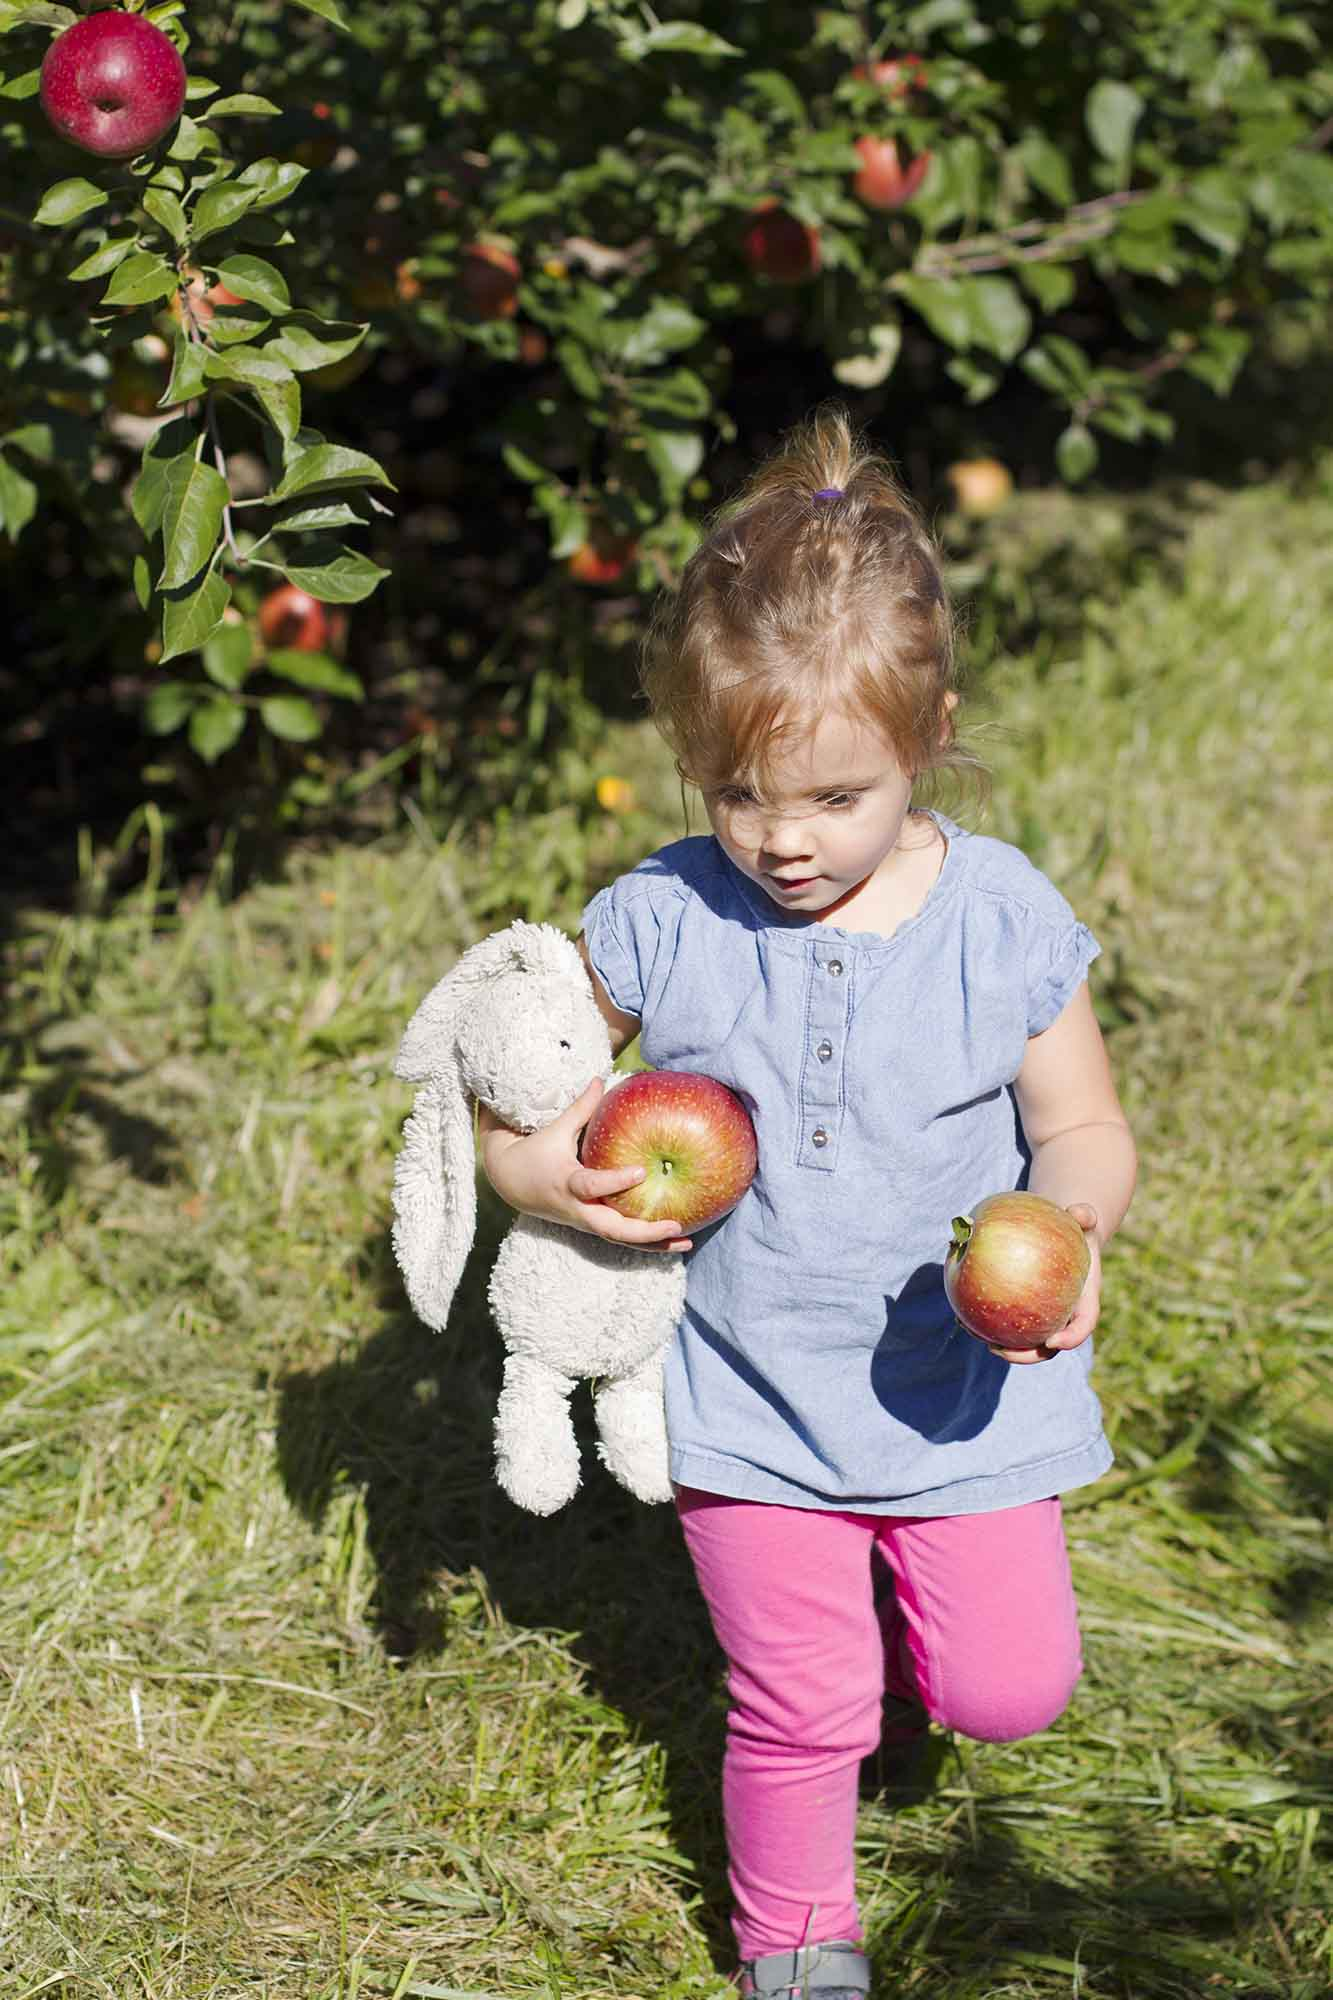 Avery at the Apple Orchard | girlversusdough.com @girlversusdough